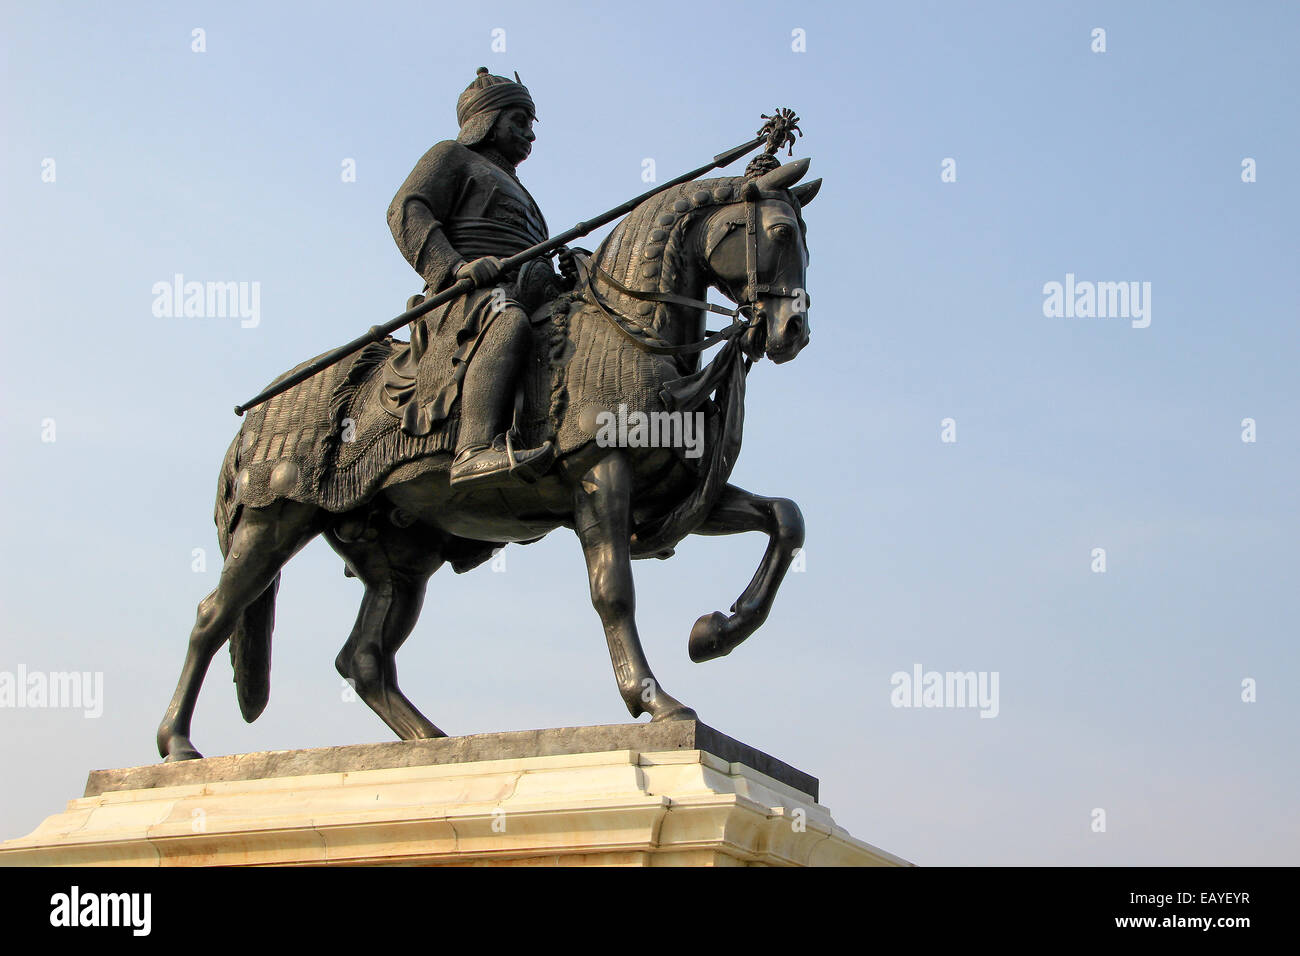 Statue of Maharana Pratap with sword riding on his horse Chetak at Pratap Smarak on Moti Magri Hill in Udaipur, - Stock Image